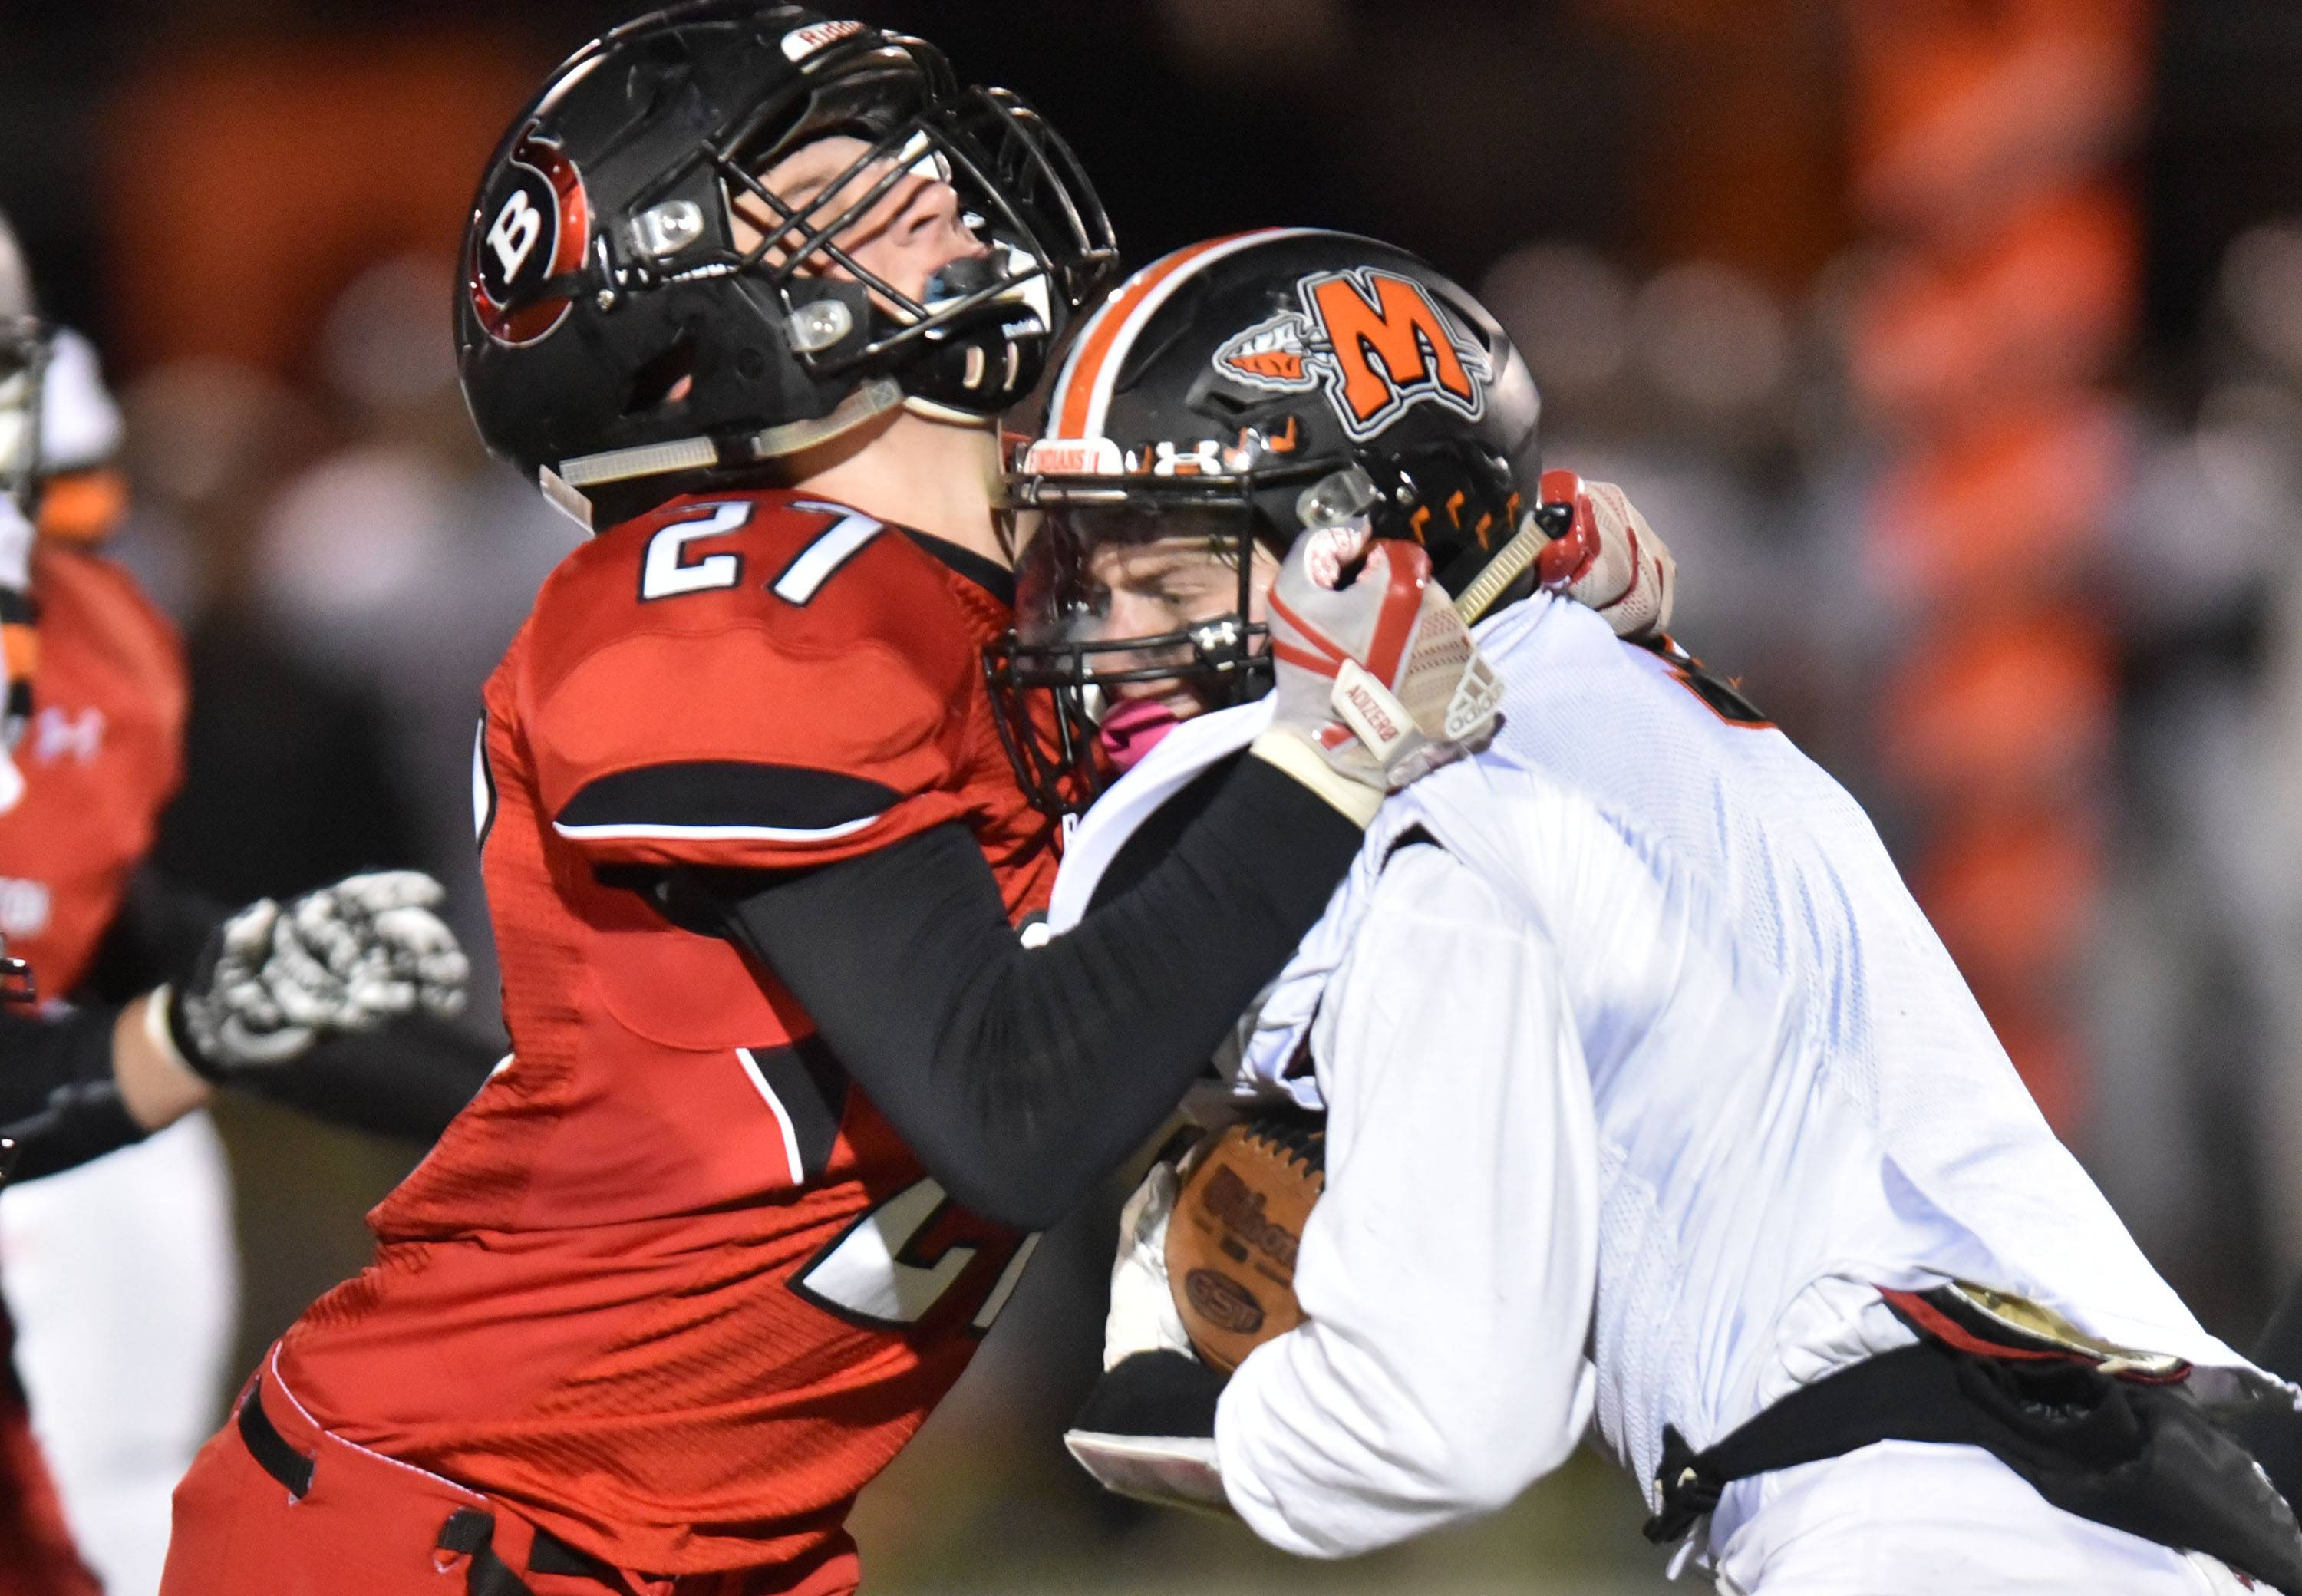 Barrington's Nick Bogaerts stops Minooka's Max Christiano in the first half Friday in the Class 8A football playoffs in Barrington.